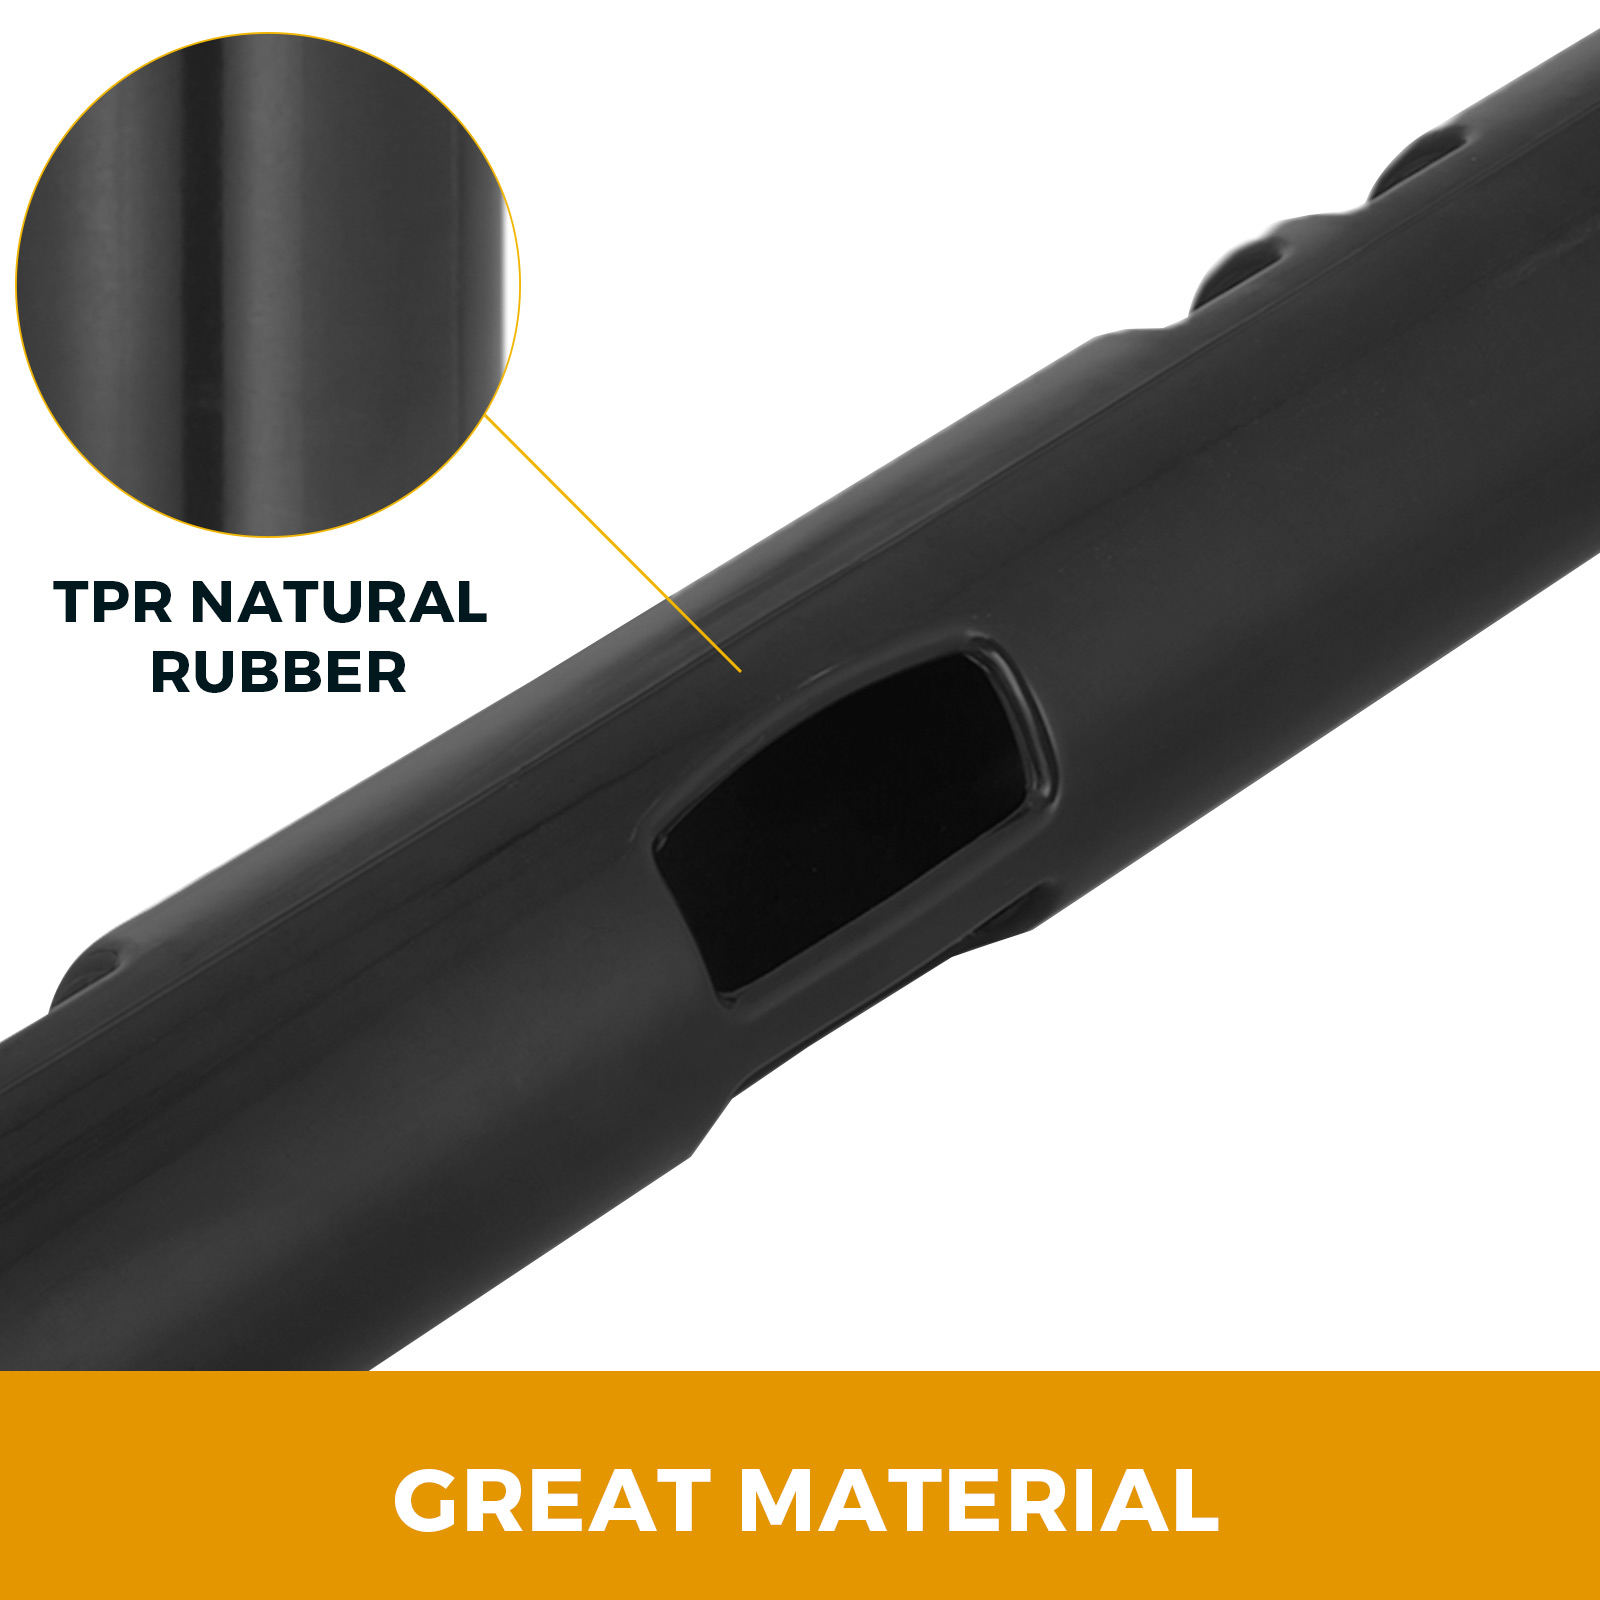 Vipr-Fitpro-Fitness-Tube-Loaded-Movement-Training-weightlifting-4-6-8-10-12-Kg thumbnail 302